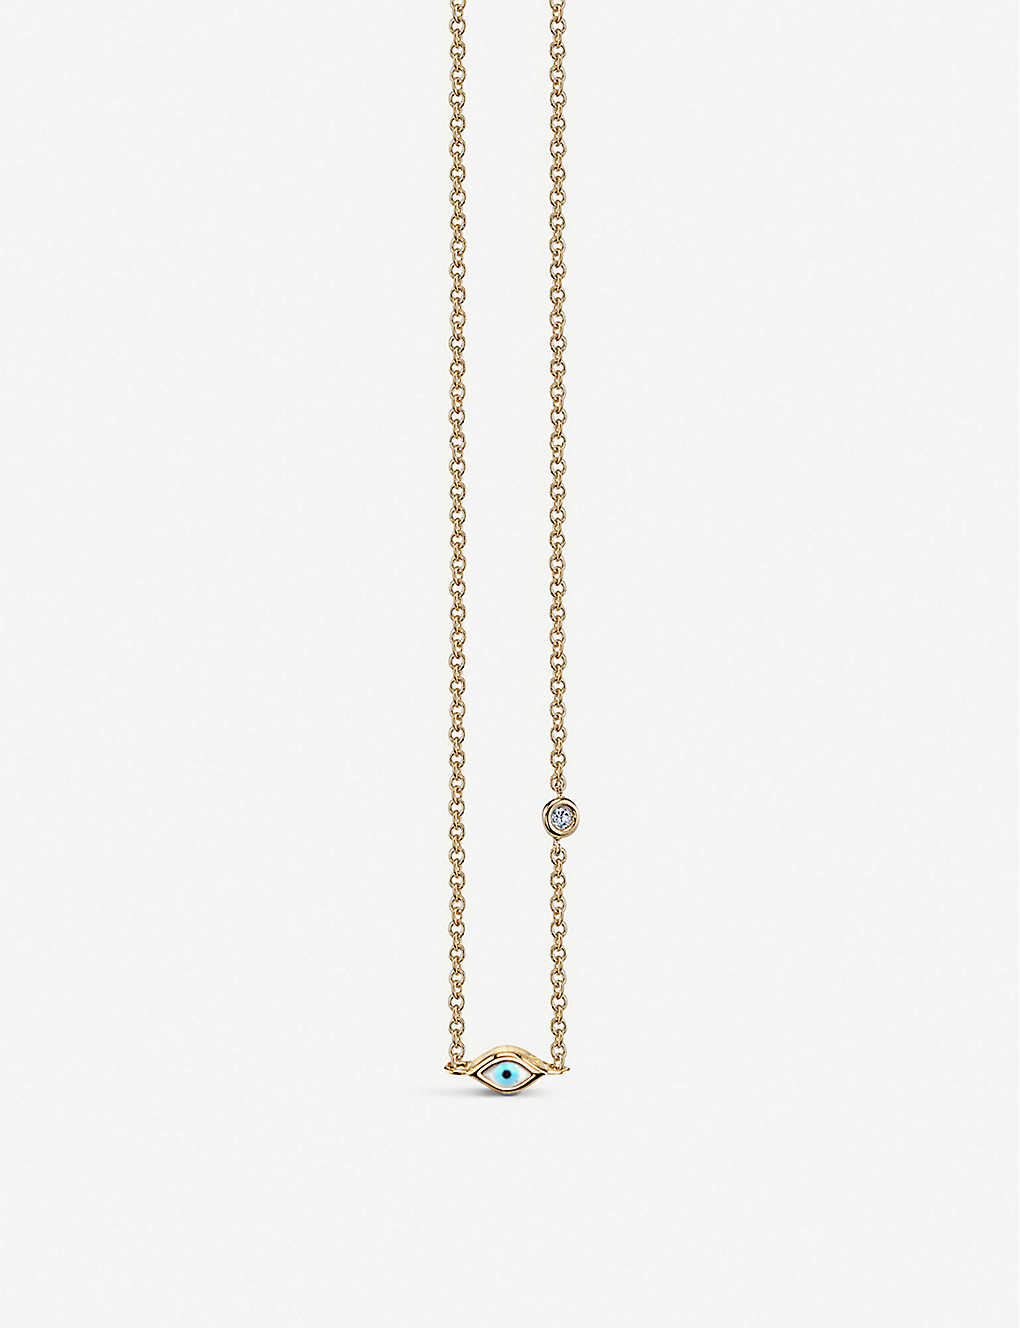 THE ALKEMISTRY: Sydney Evan Evil Eye 14ct yellow-gold and diamond mini necklace